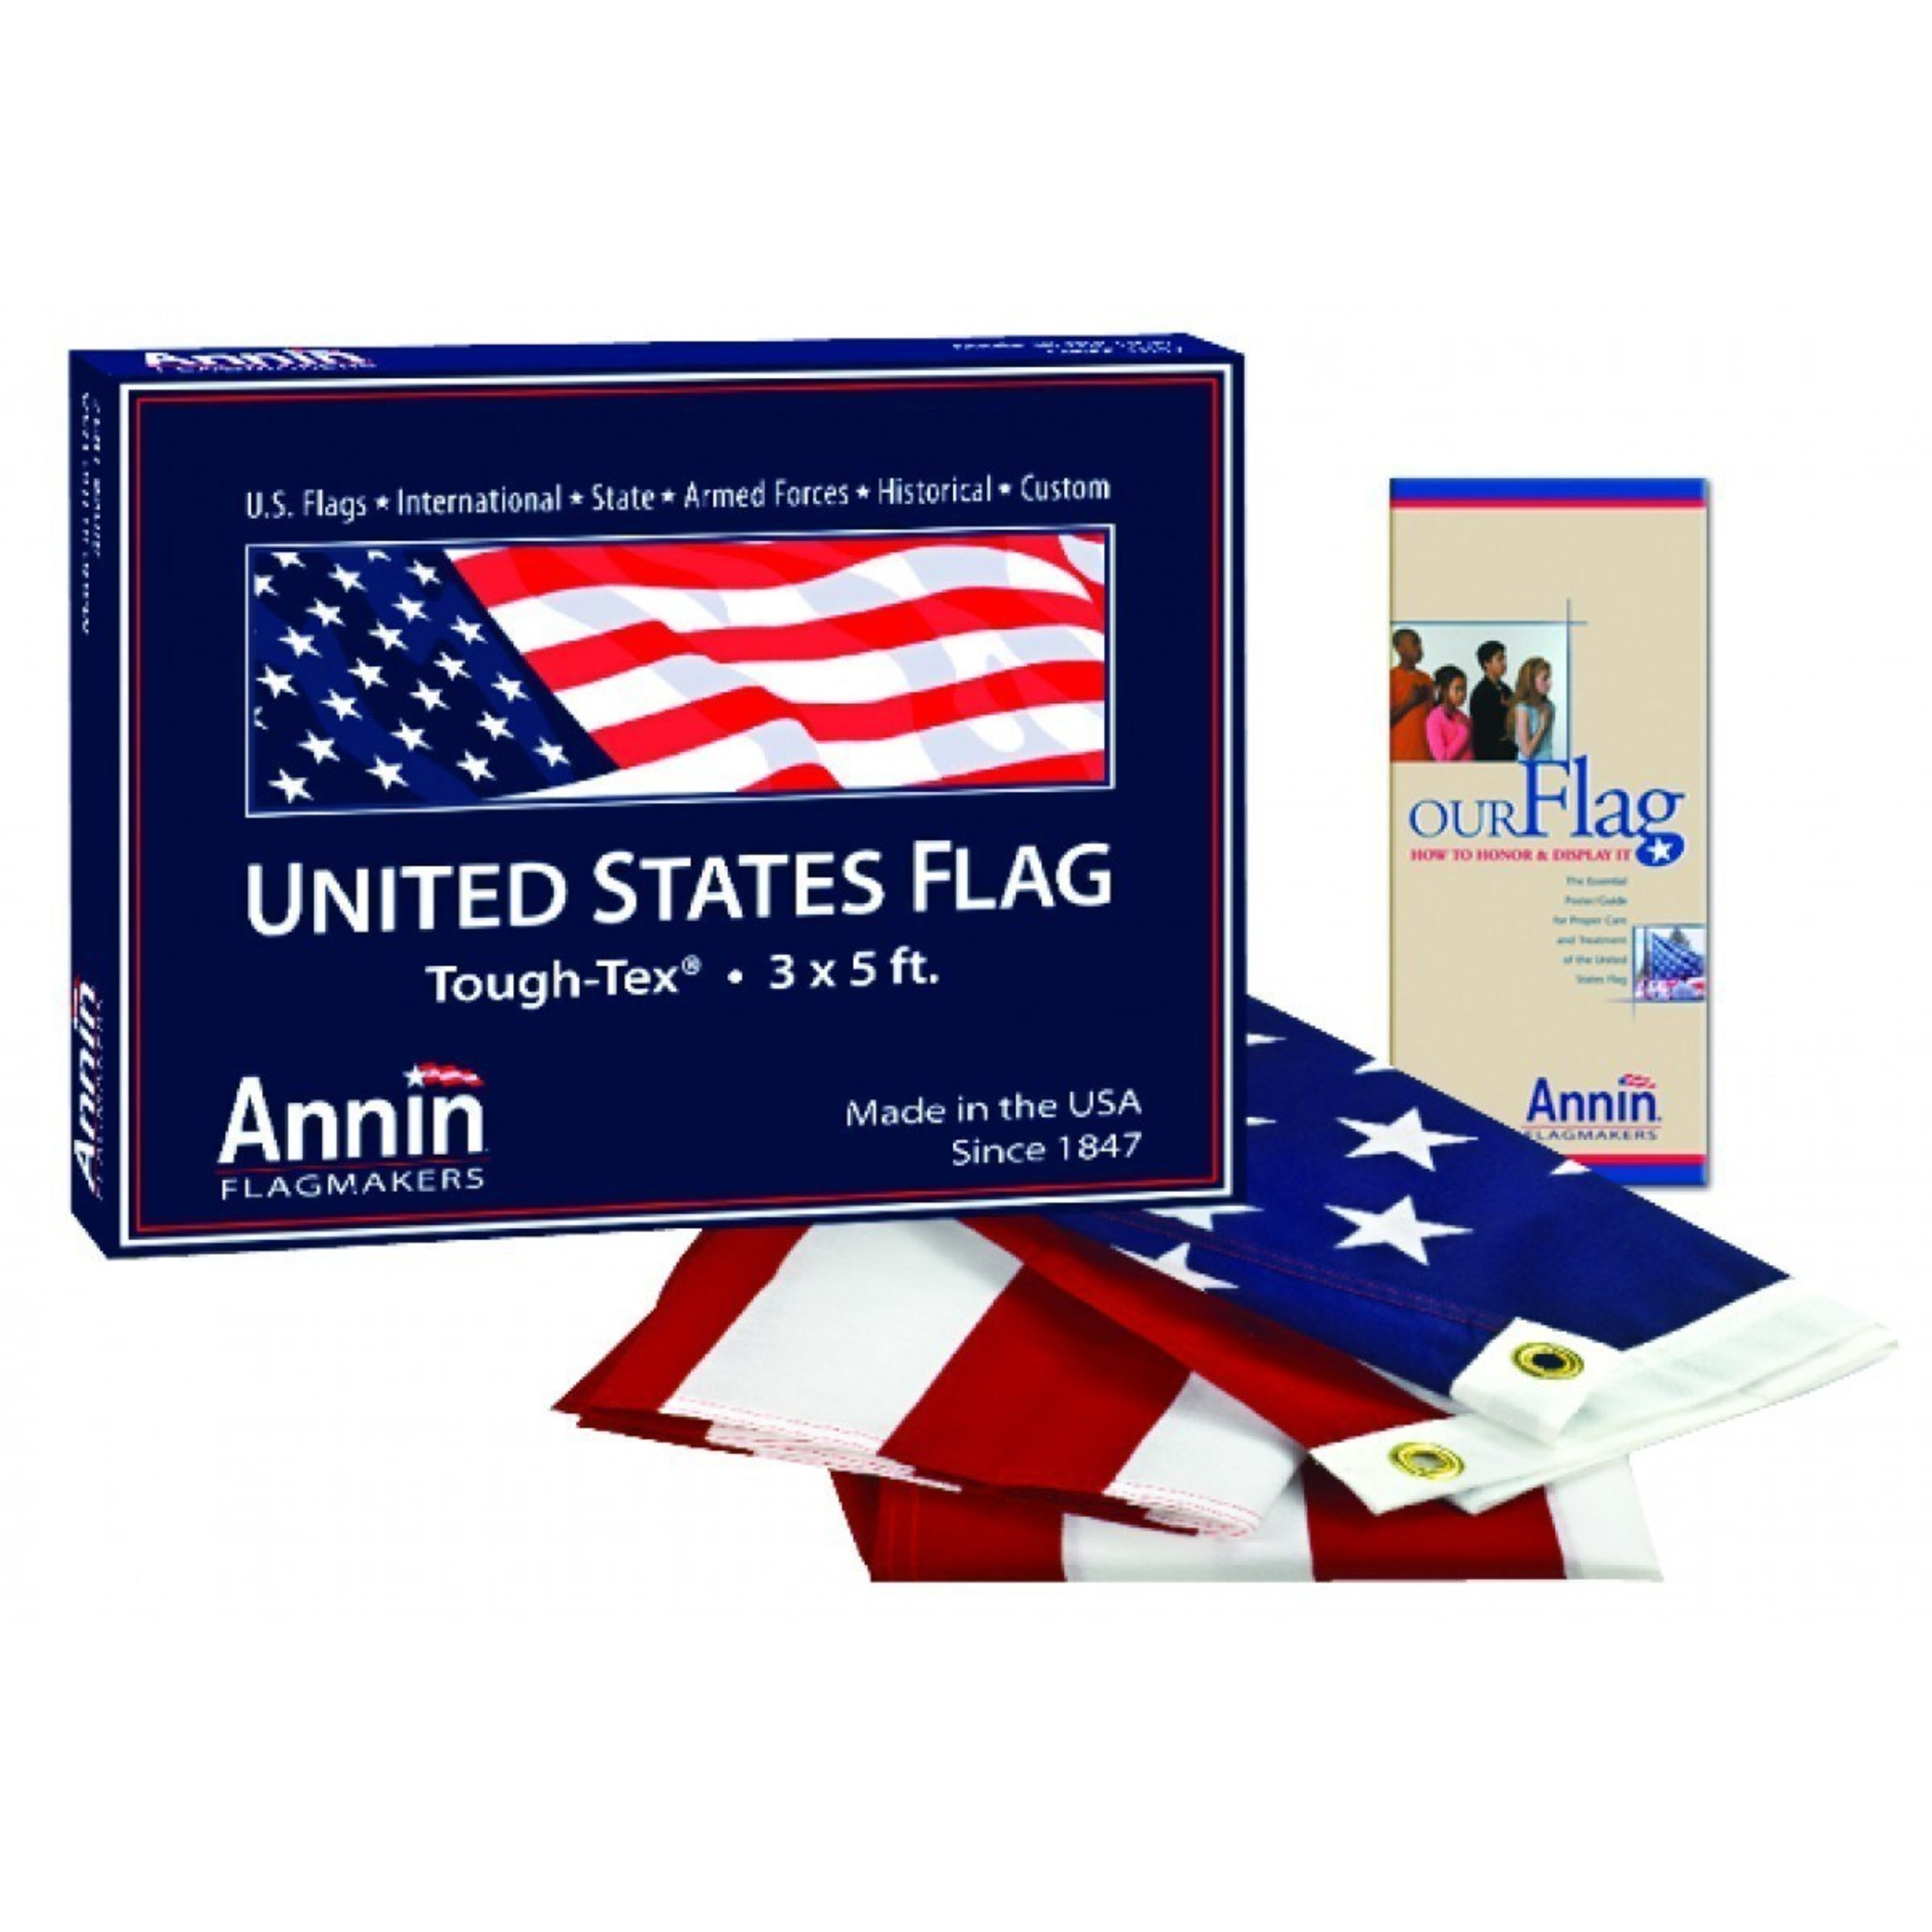 AmericanFlags.com sells only American-made US flags.